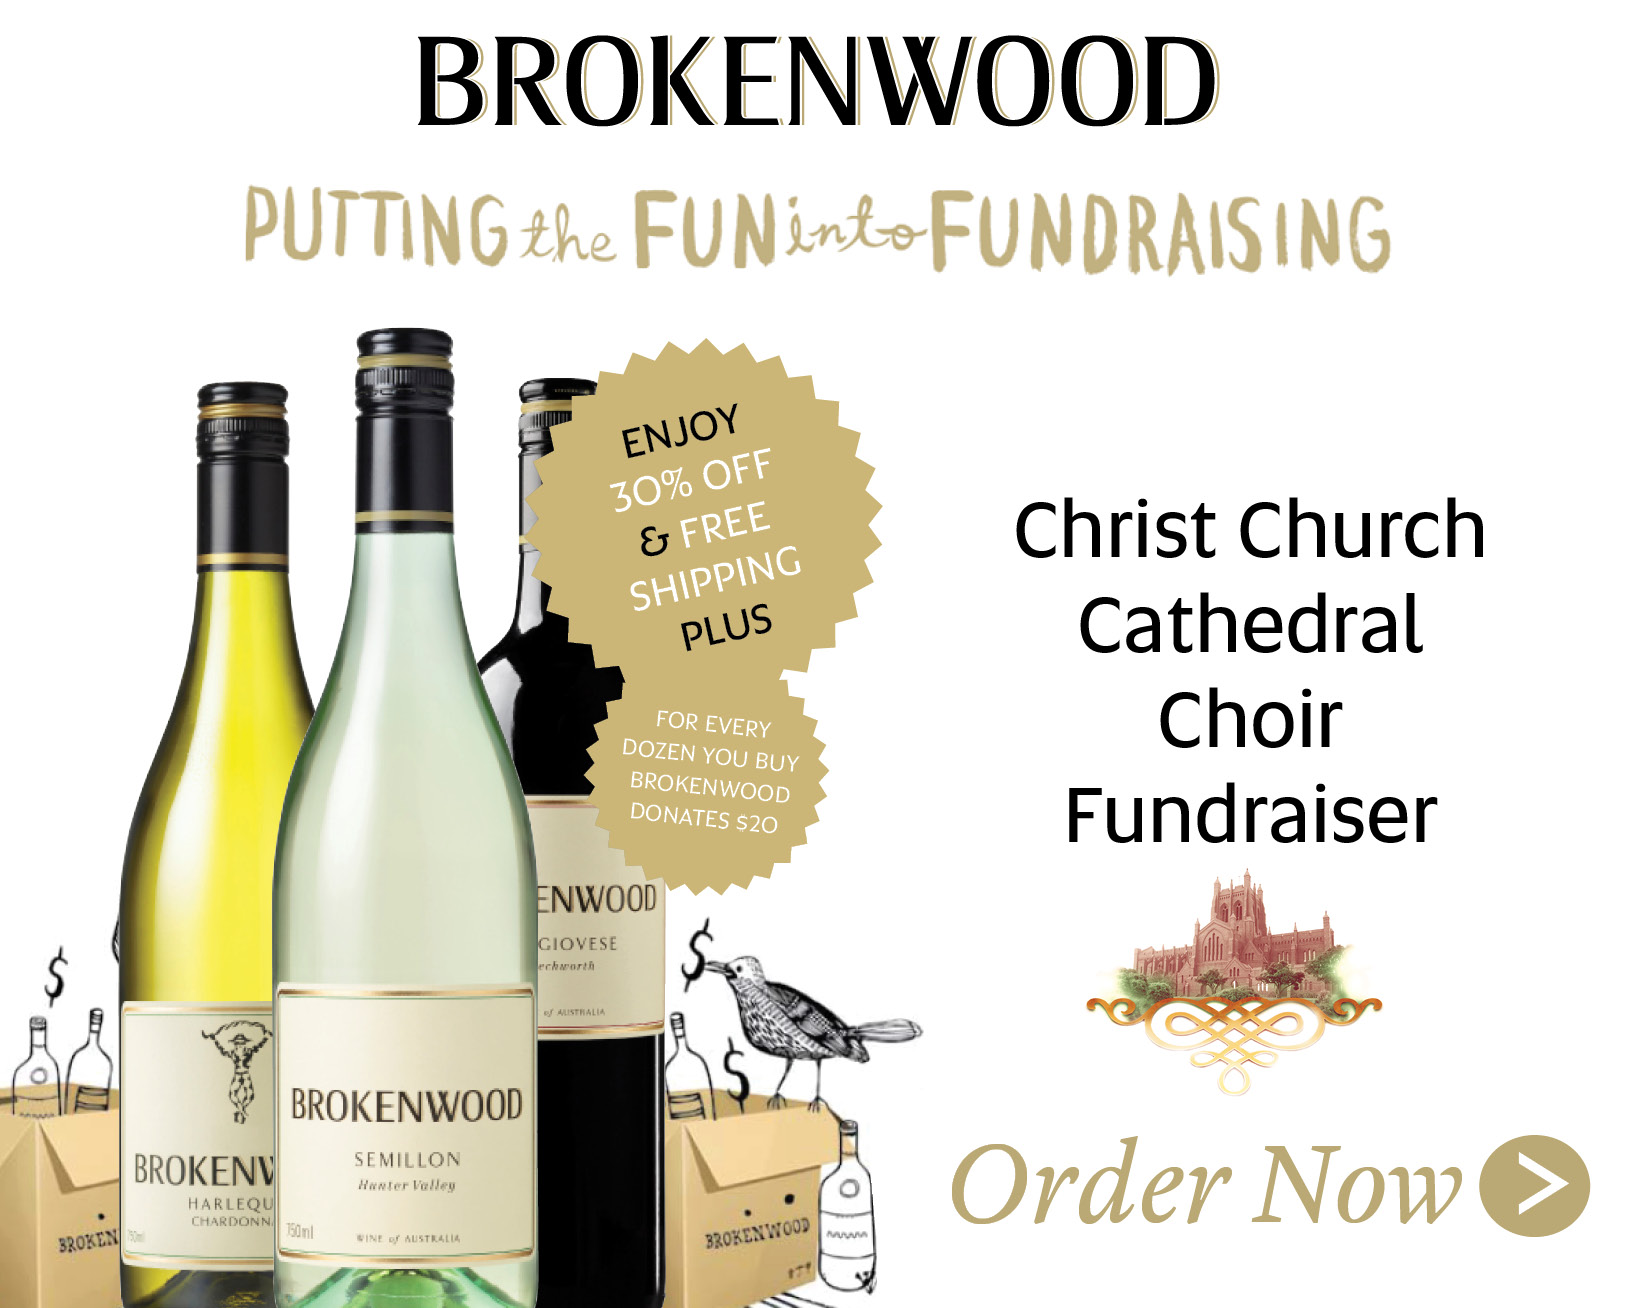 Buy online directly from Brokenwood and use the coupon code CHOIR